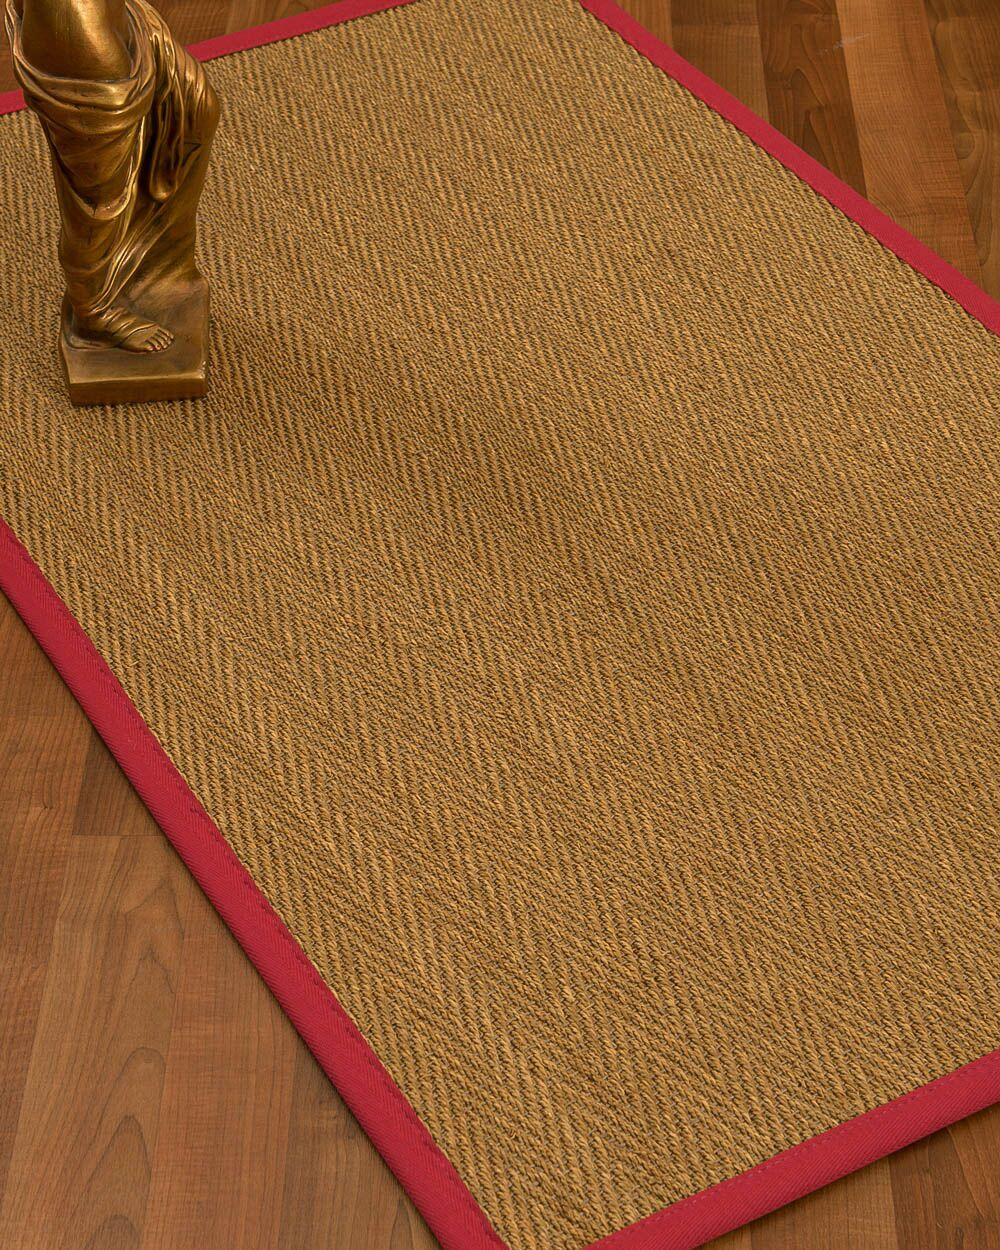 Mahaney Border Hand-Woven Beige/Red Area Rug Rug Size: Rectangle 5' x 8', Rug Pad Included: Yes